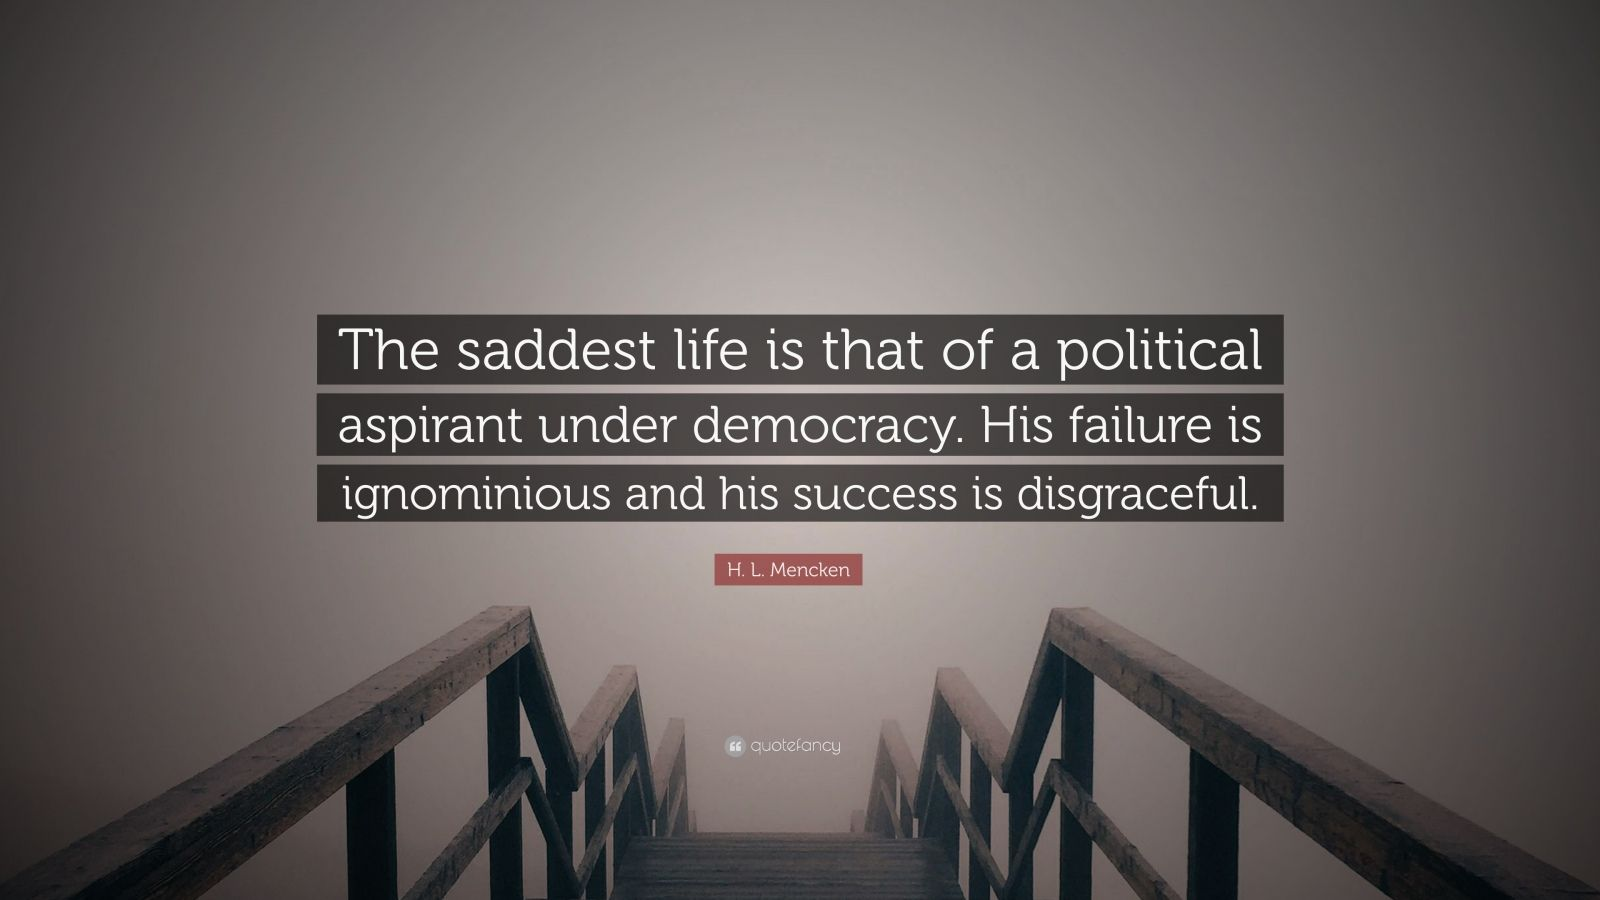 """H. L. Mencken Quote: """"The saddest life is that of a political aspirant under democracy. His failure is ignominious and his success is disgraceful."""""""